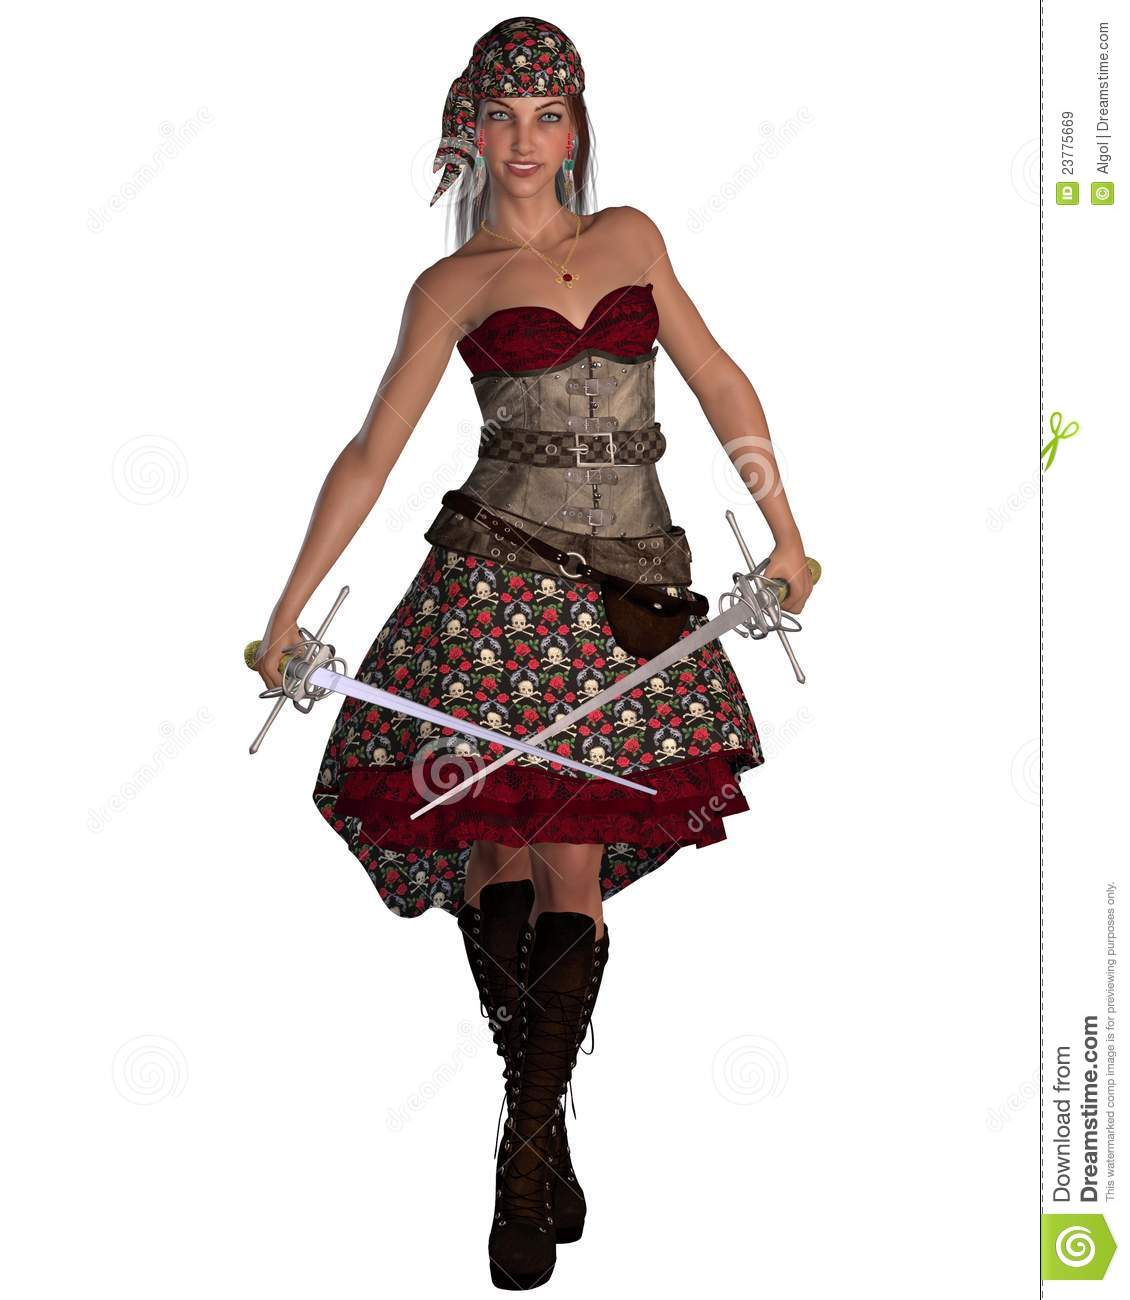 Pirate Woman With Bandana Royalty Free Stock Images